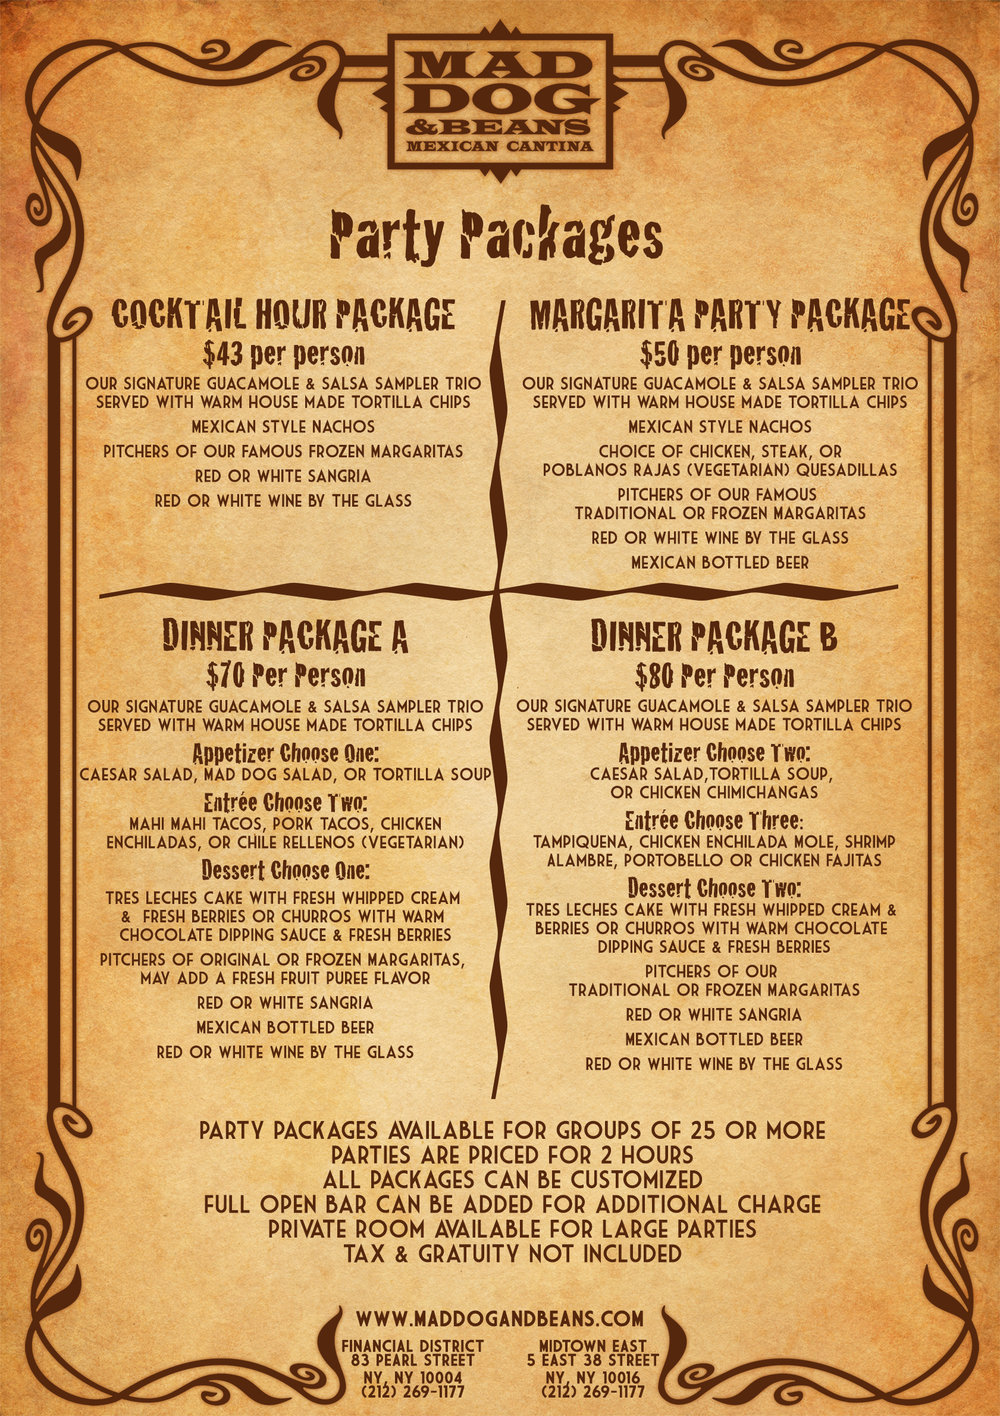 PartyPackages2017a.jpg